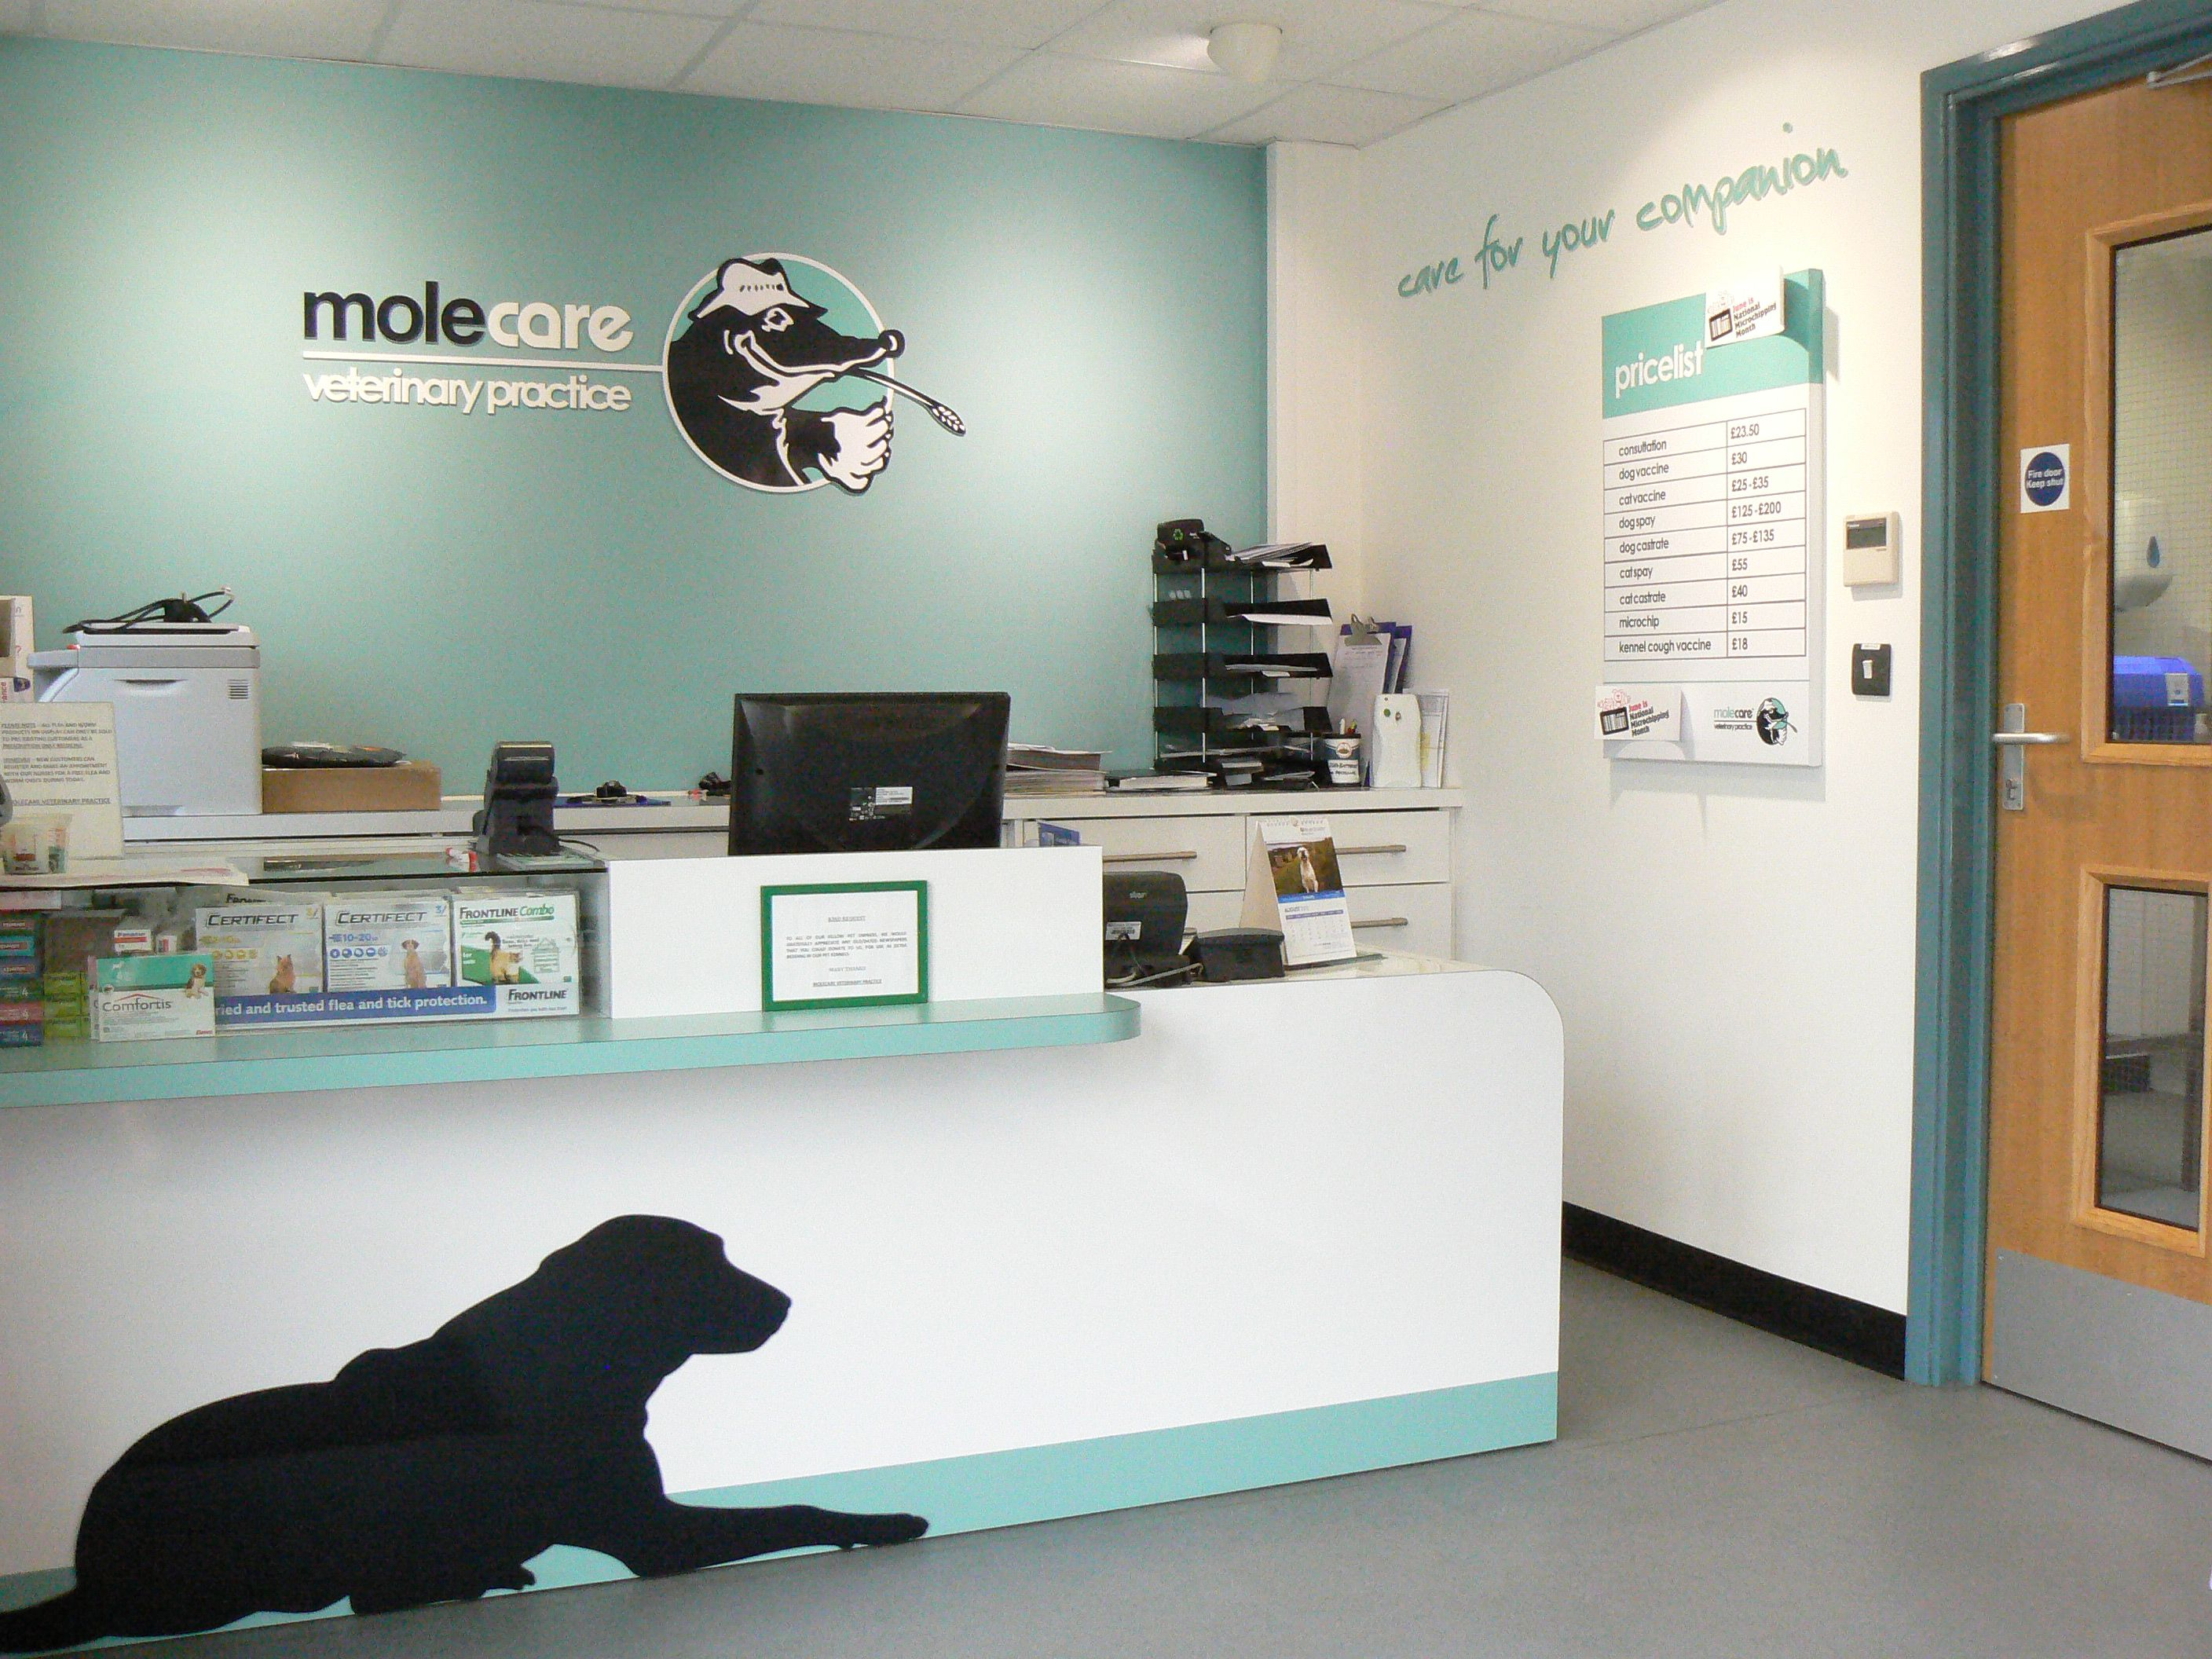 Wall Murals For Schools Molecare Veterinary Practice Reception Area Work Related